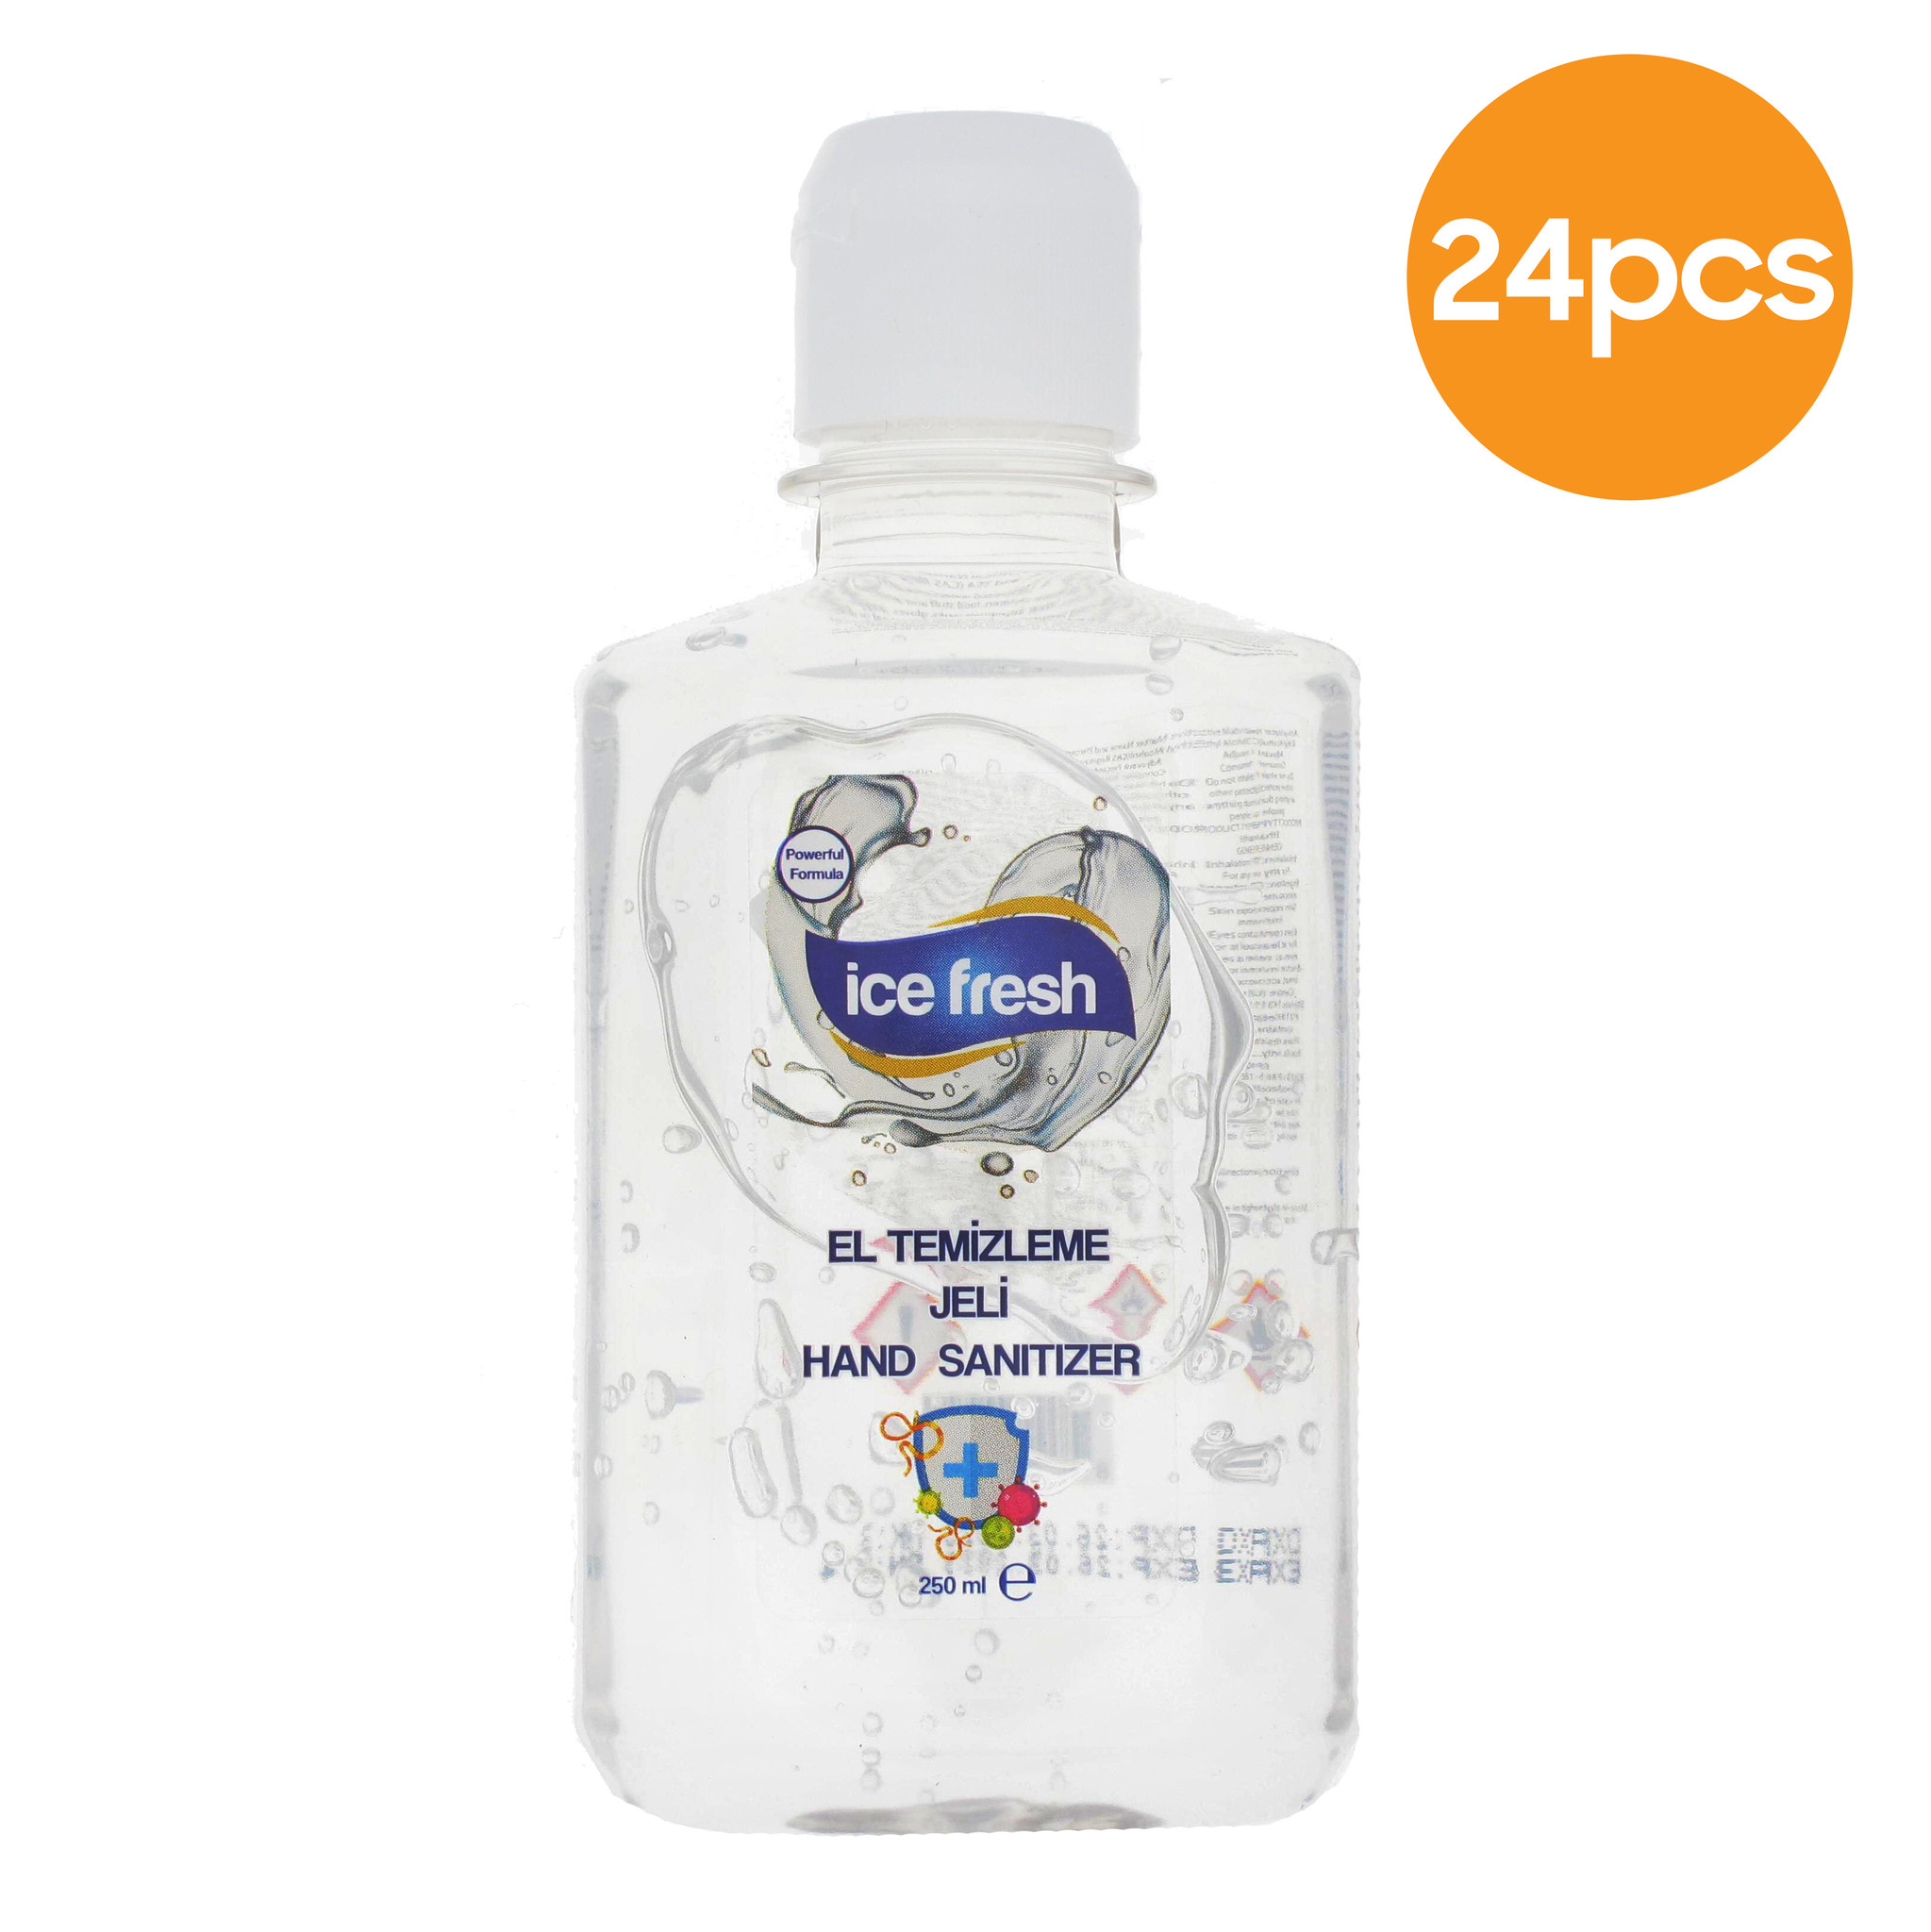 Ice fresh Hand gel Sanitizer with 80% alchohol - 250ml - 24 pack